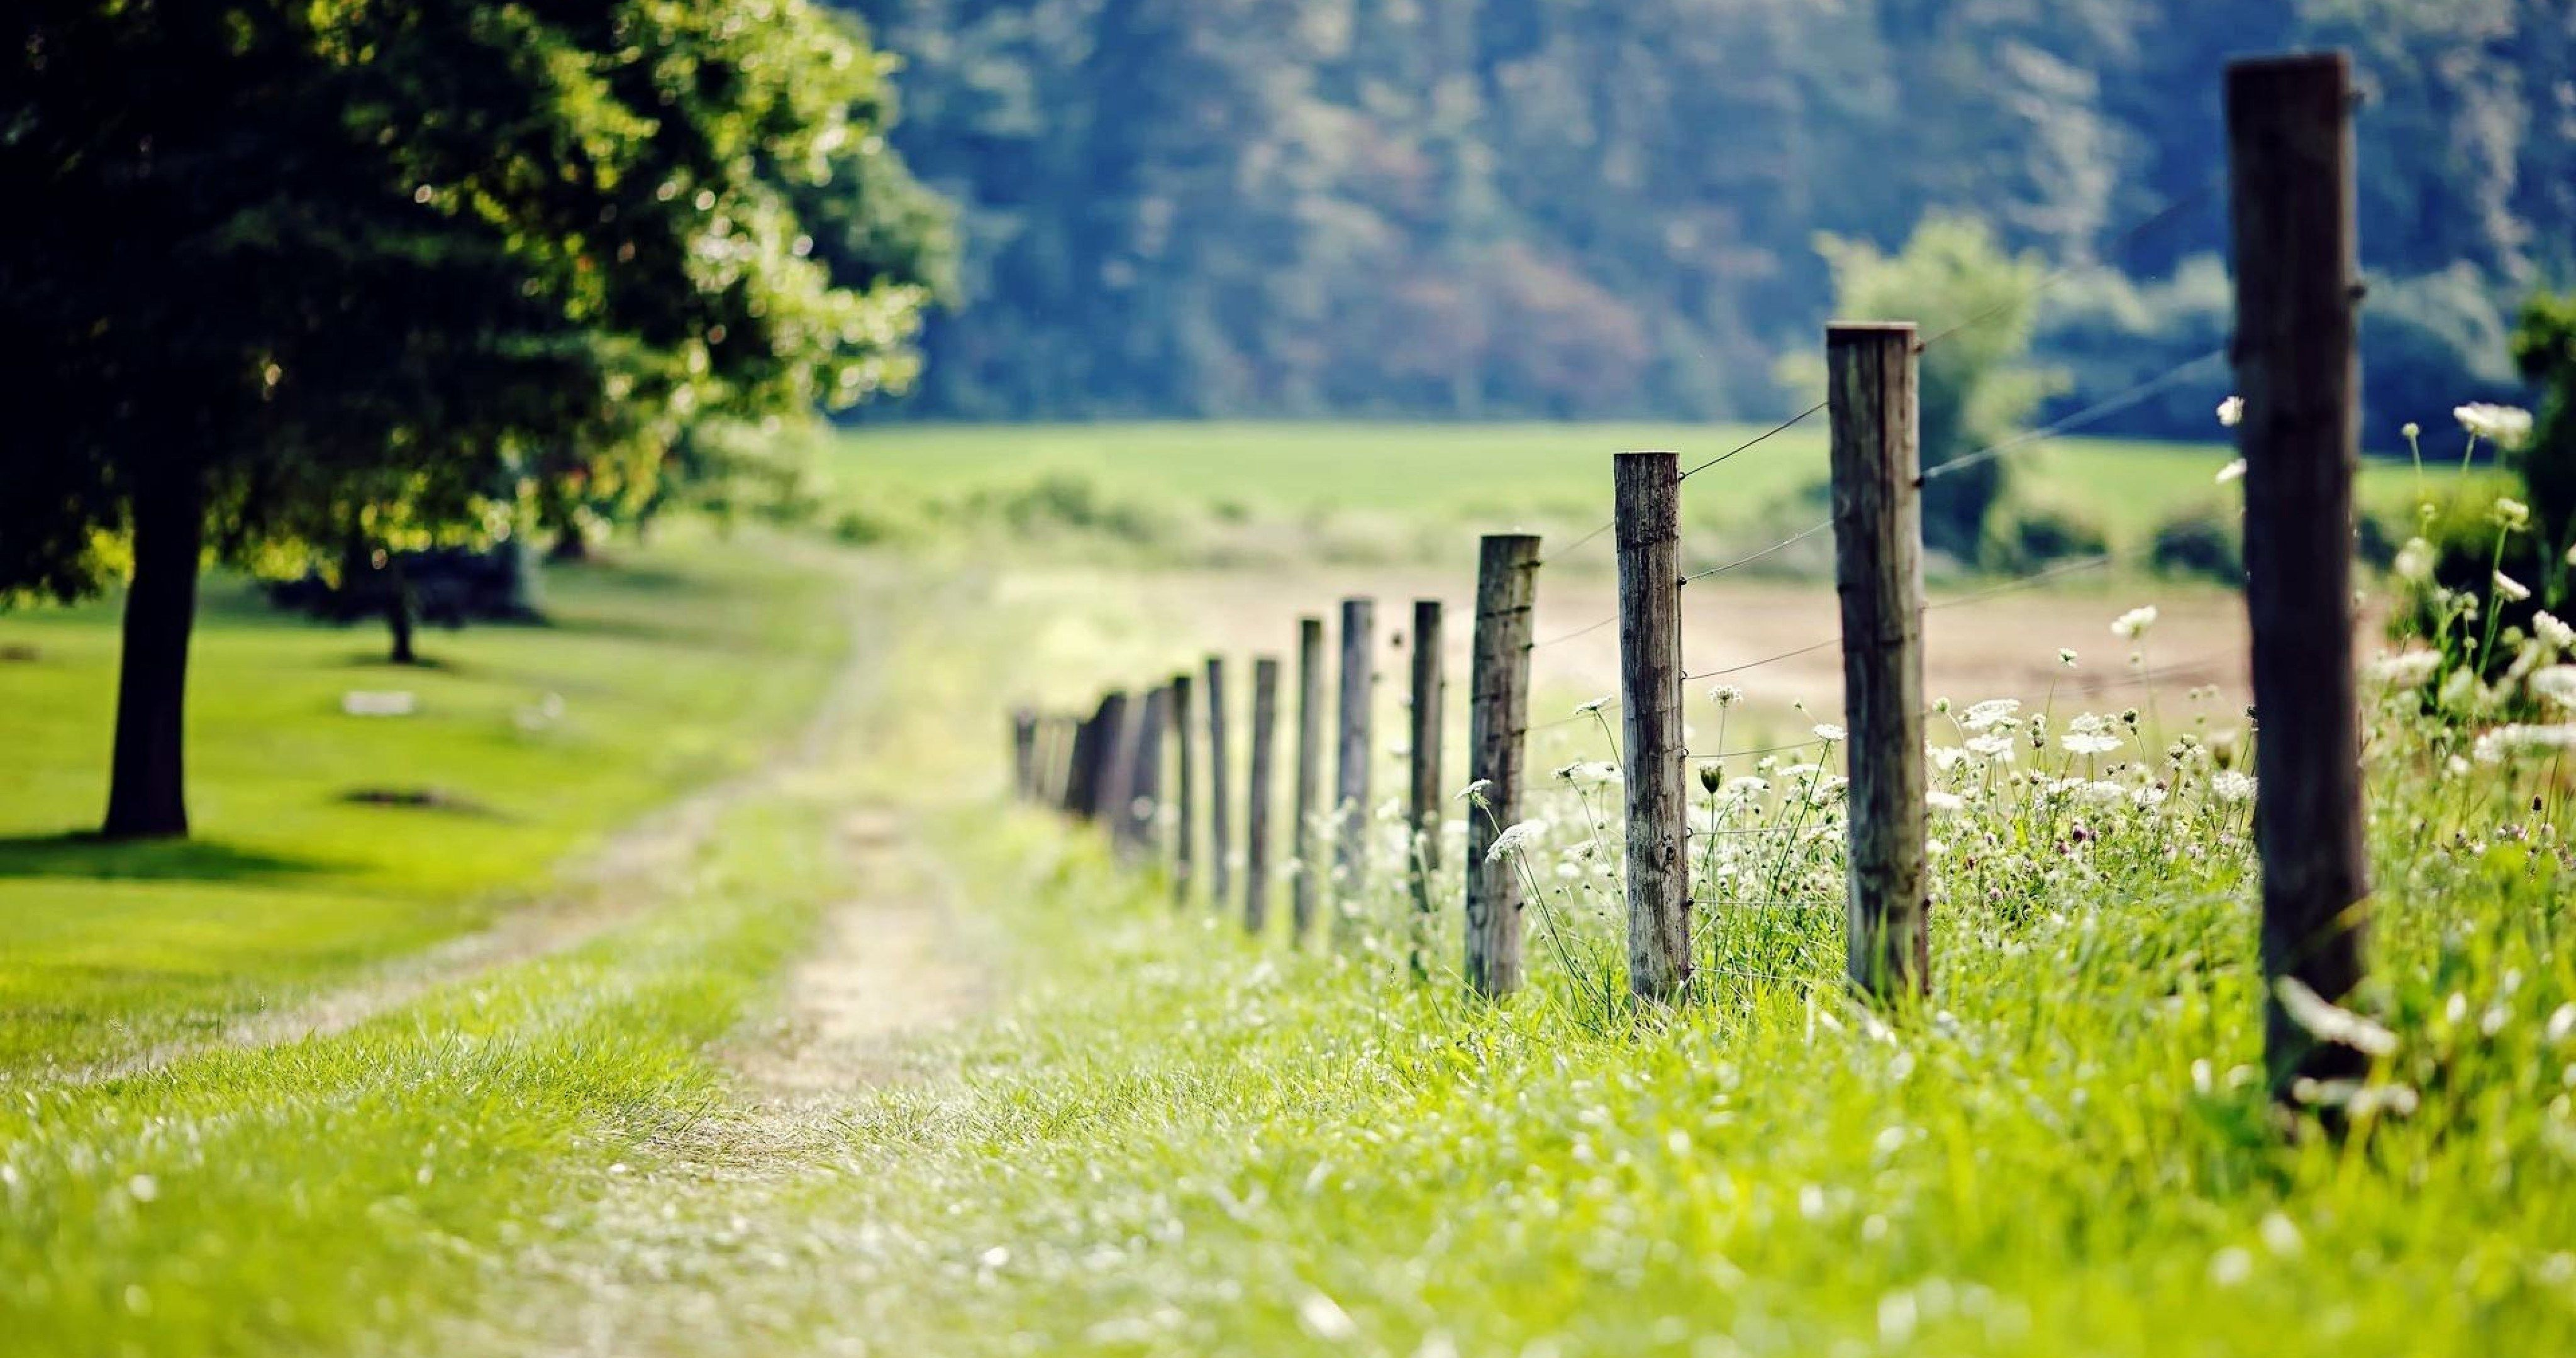 Fence In Nature 4k Ultra Hd Wallpaper Nature Backgrounds Photoshop Backgrounds Background Images Hd